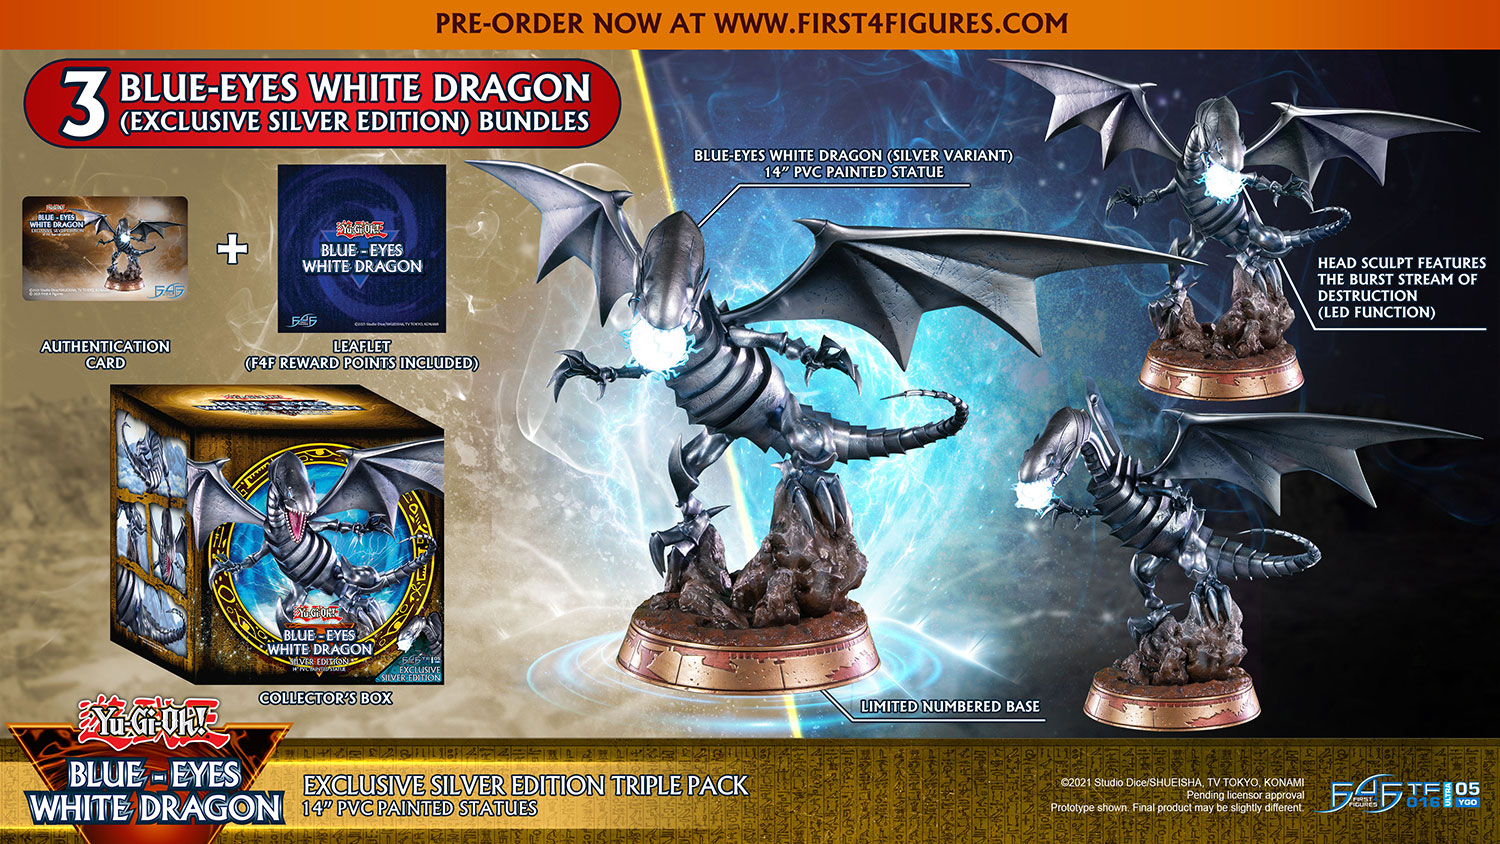 Blue-Eyes White Dragon (Exclusive Silver Edition Triple Pack)